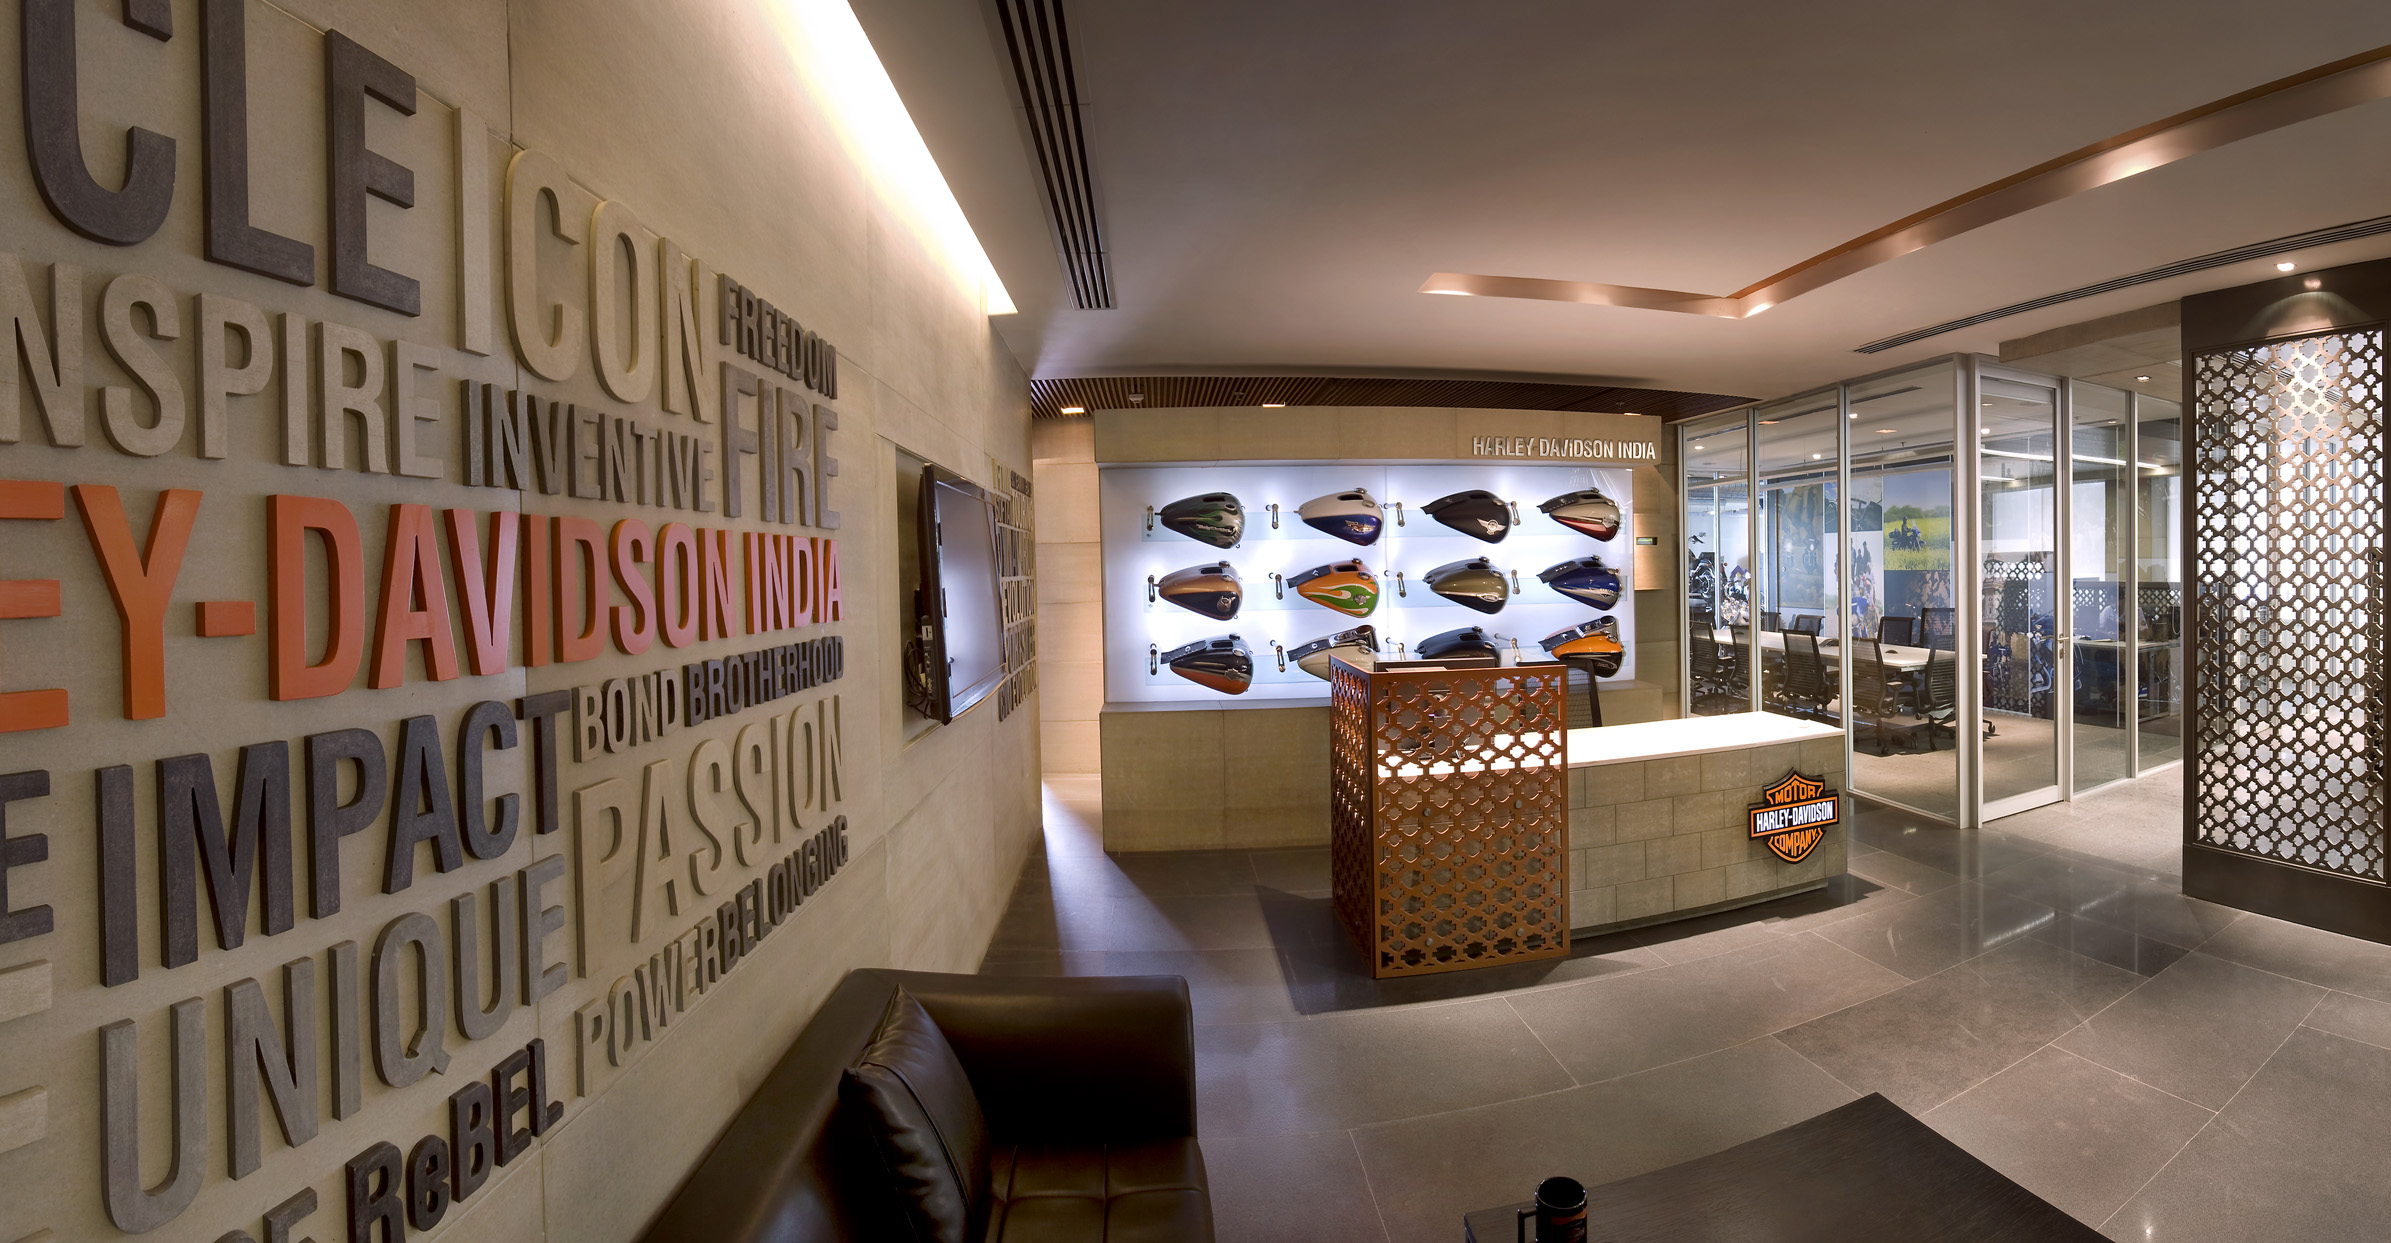 Harley davidson corporate office for Corporate office decorating ideas pictures